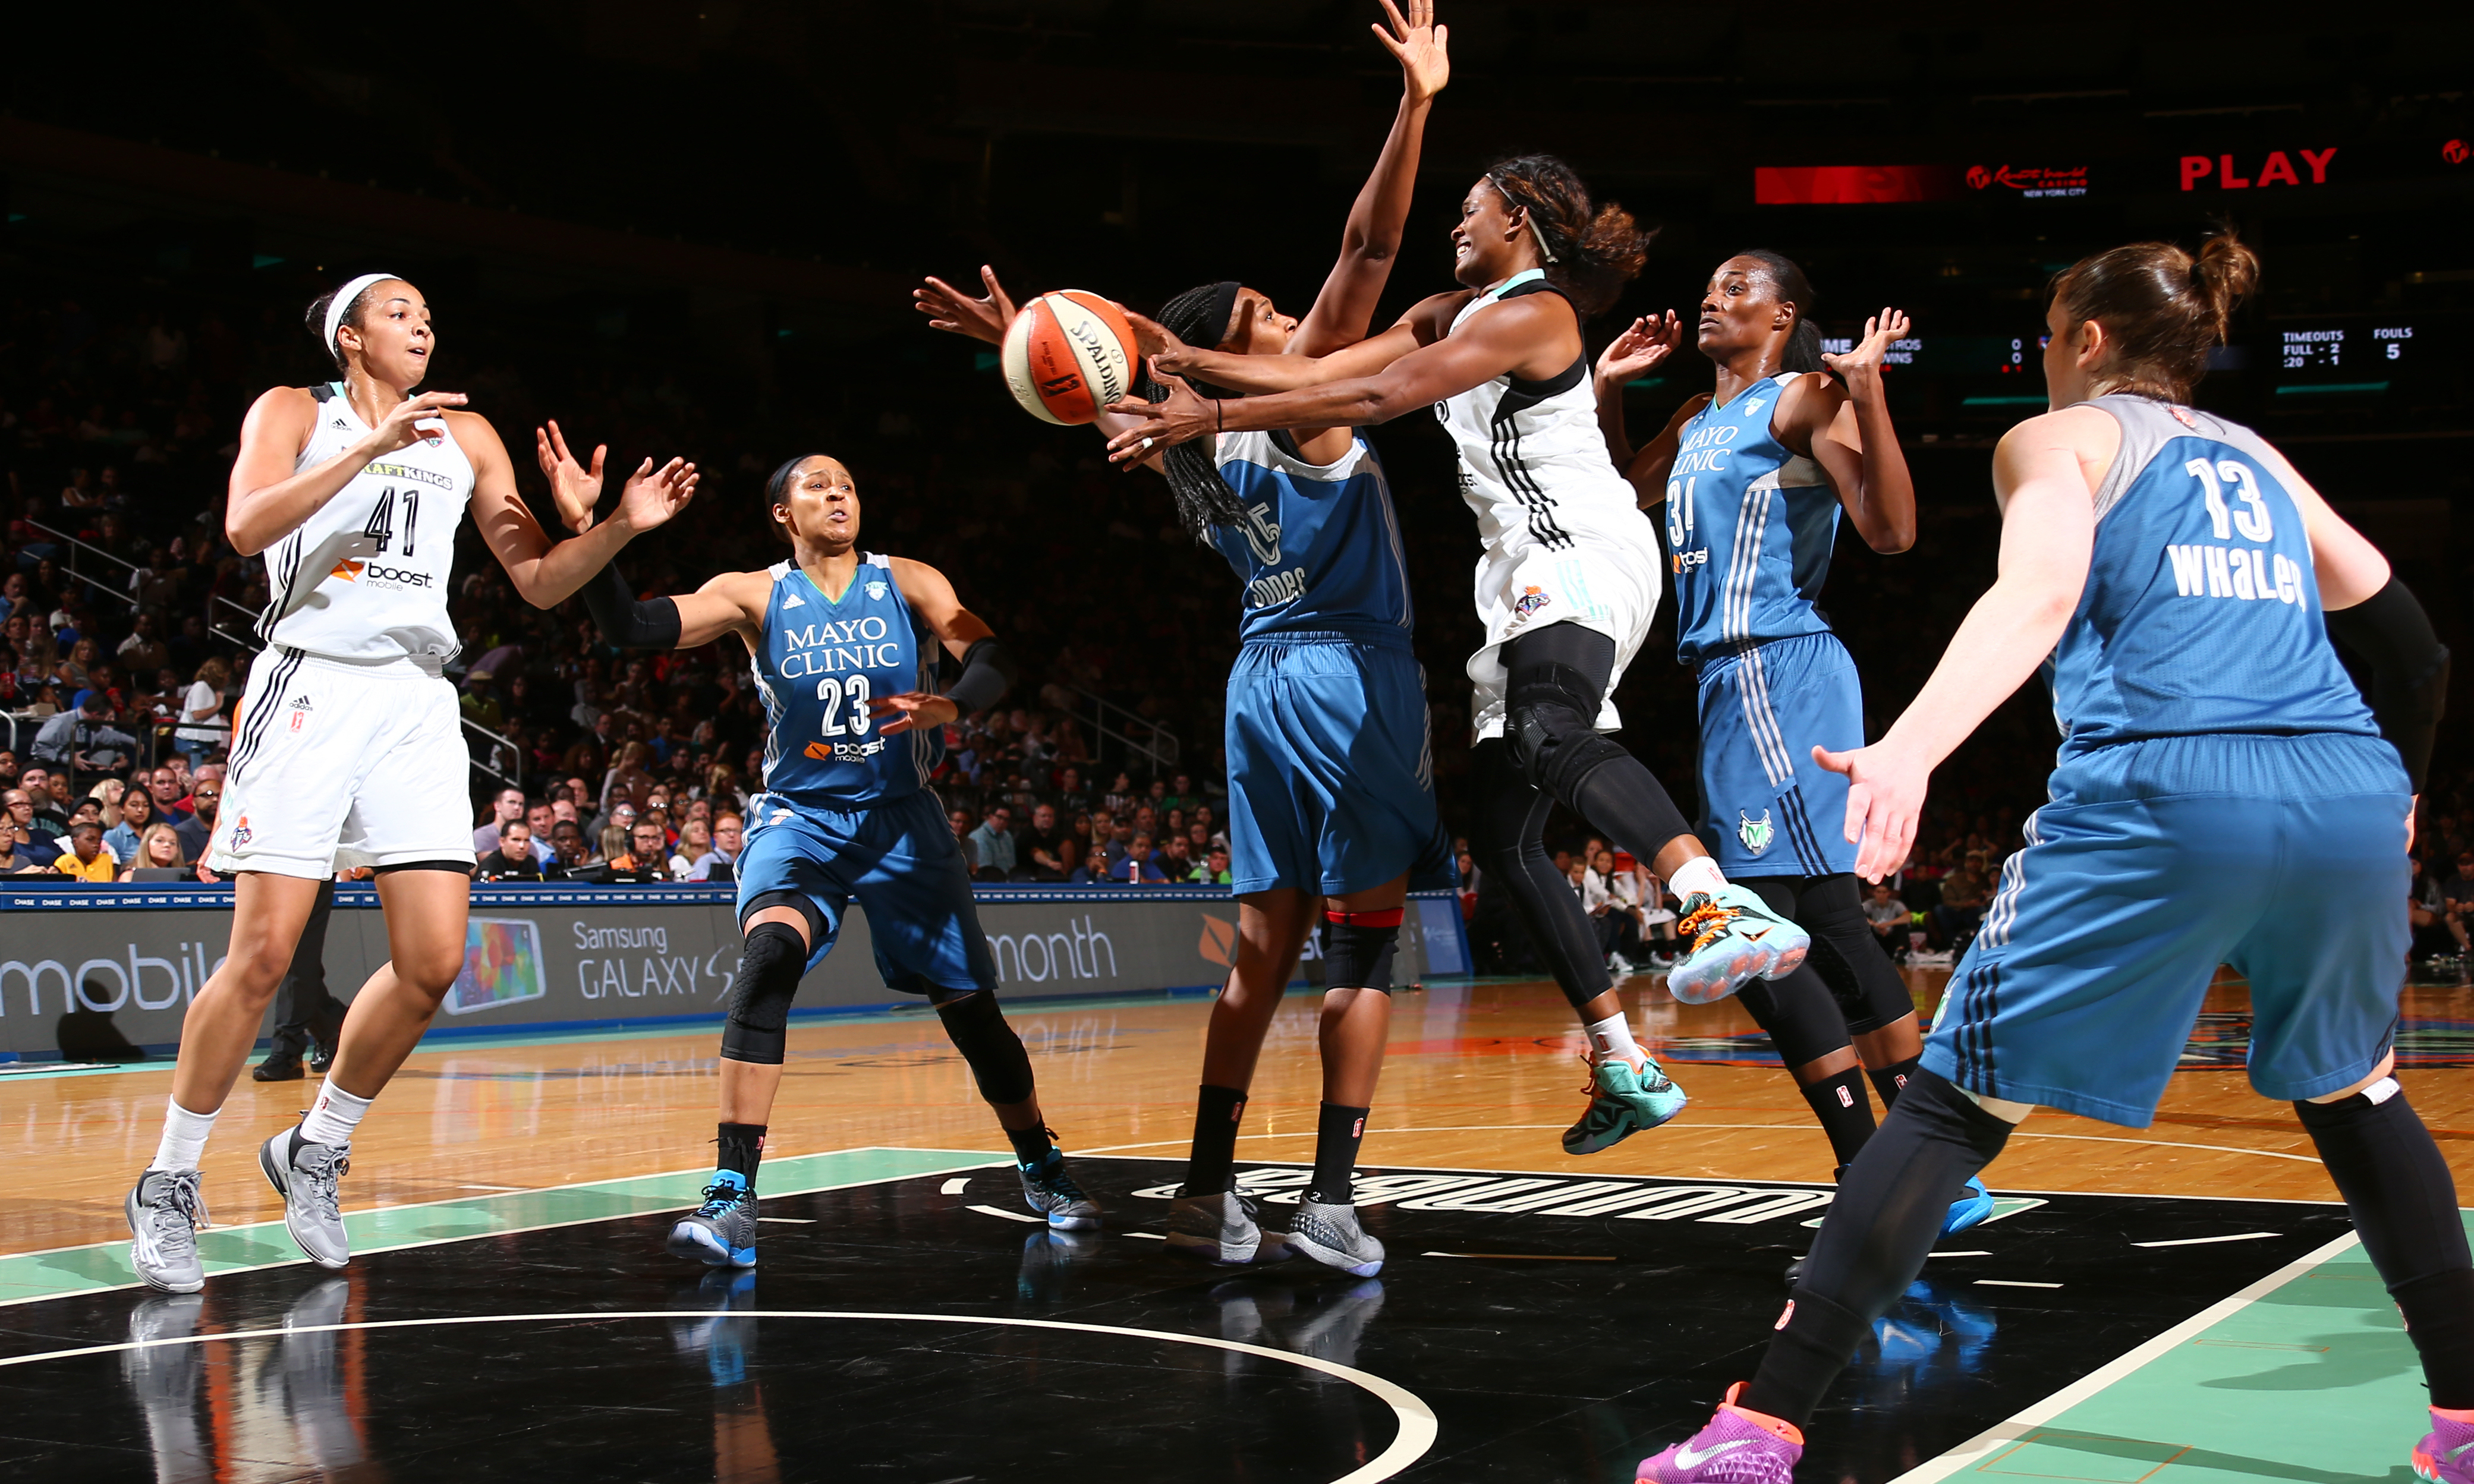 Lynx guard Lindsay Whalen (13) could only watch as her teammates attempted to stop Liberty forward Swin Cash. Cash had a rather quiet night, finishing with just eight points in 24 minutes of play, while Whalen finished with eight points, three rebounds and four assists.